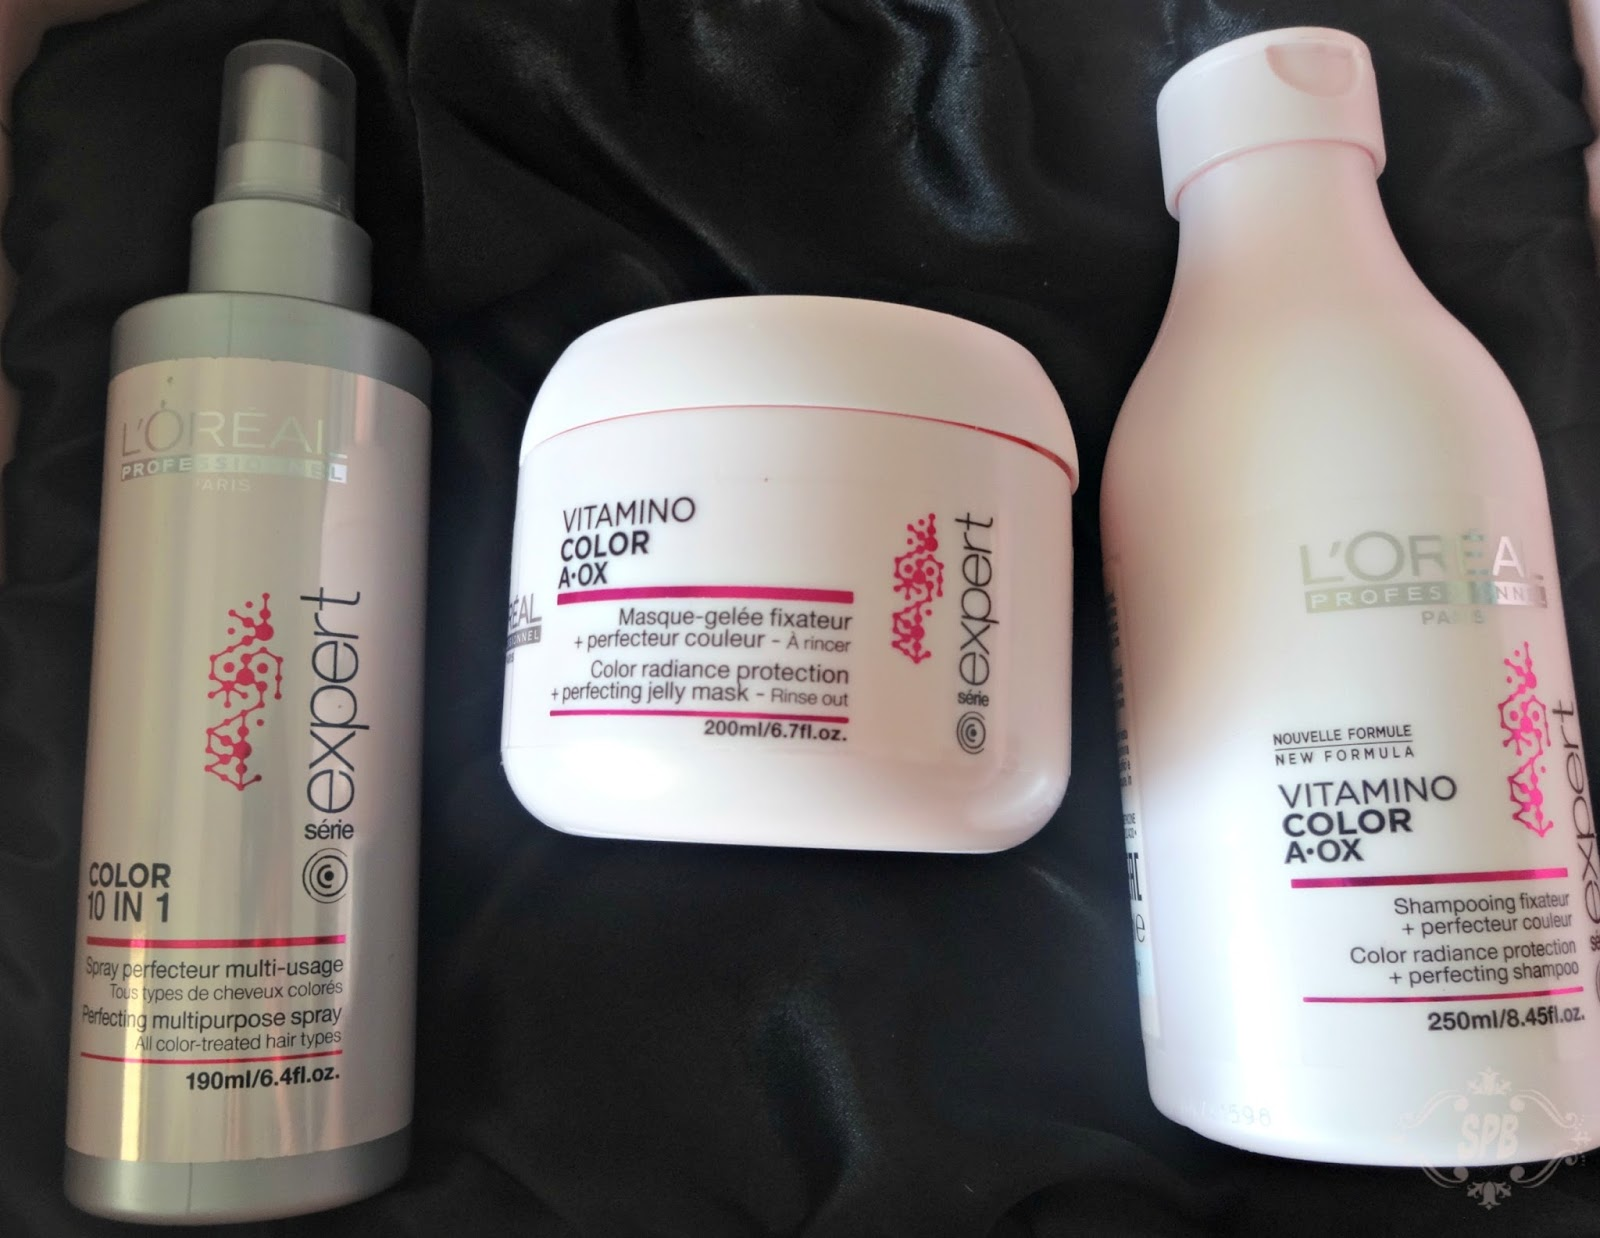 Designed For Normal Color Treated Hair L Oreal Vibrancy Intensive Shampoo And Conditioner Set 12 6 Ounces Each Bundle